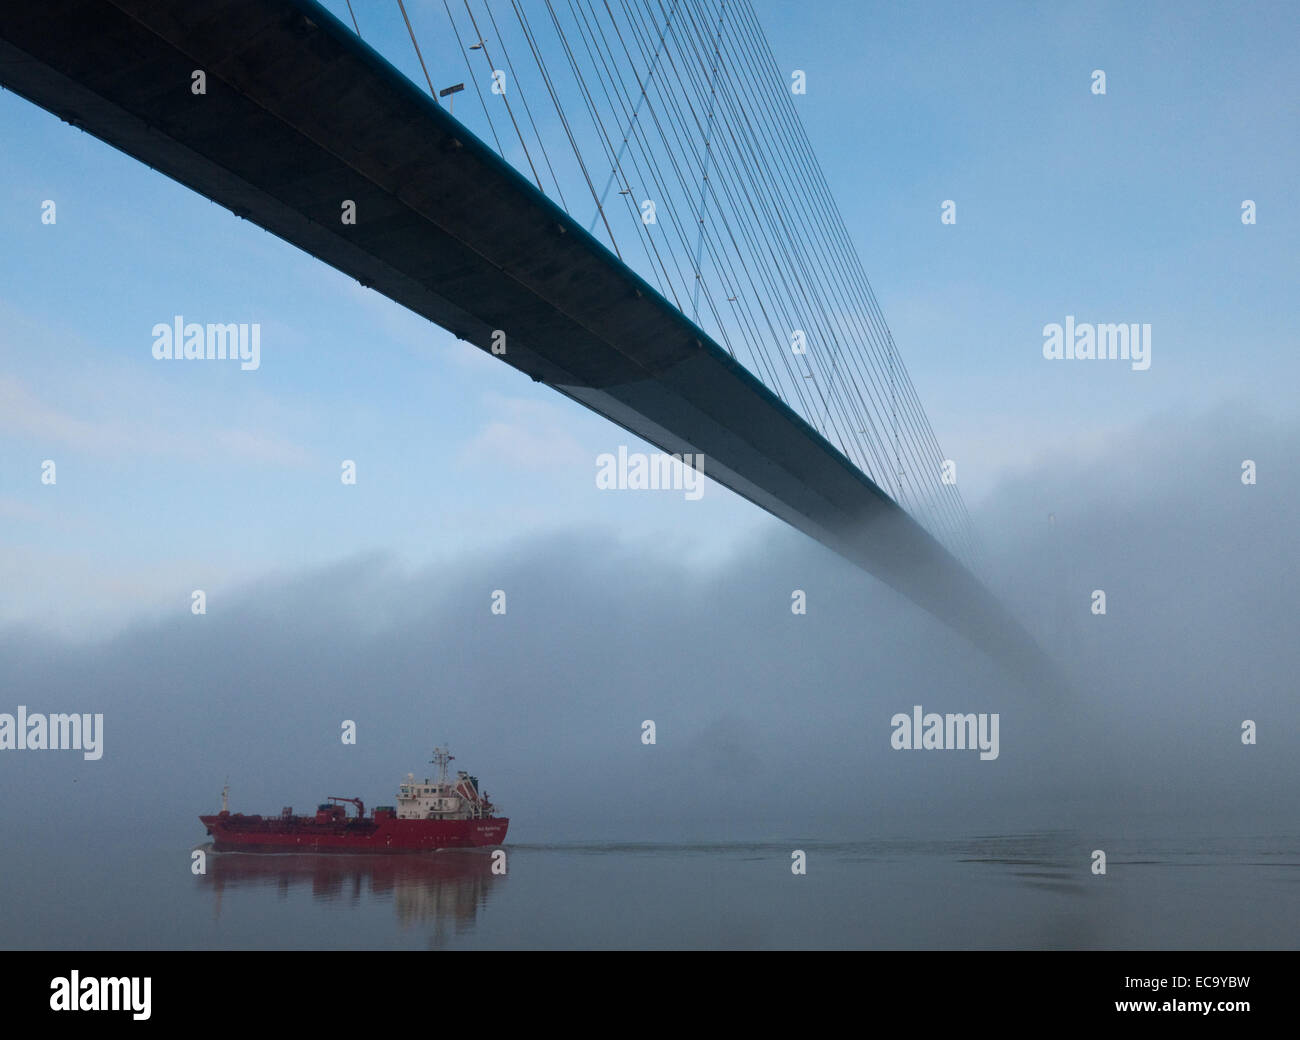 A Stolt tanker passes underneath the Pont de Normandie over the Seine river between Honfleur and Le Havre, France - Stock Image